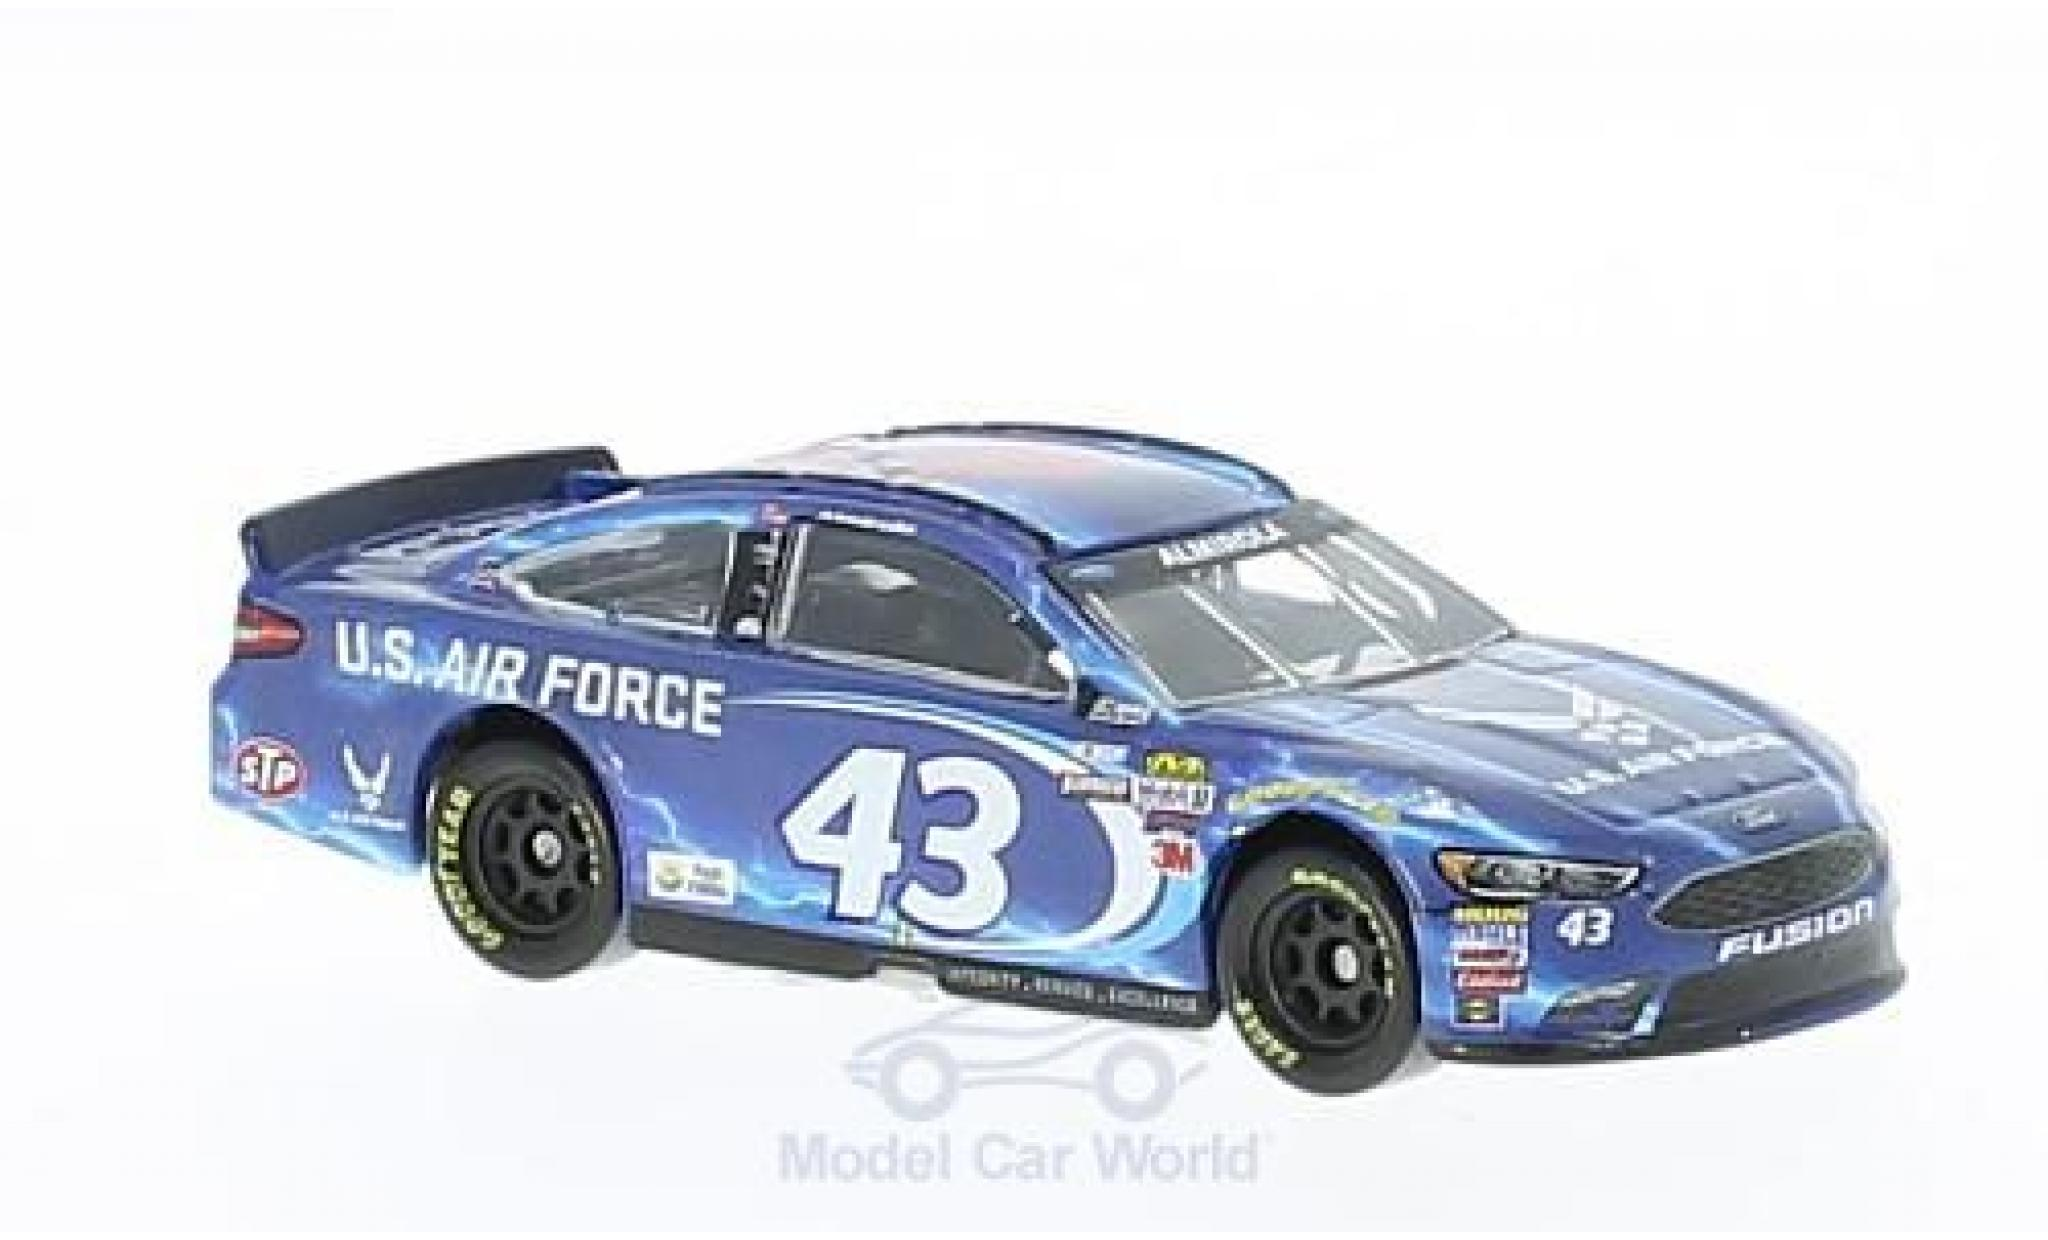 Ford Fusion 1/64 Lionel Racing No.43 Richard Petty Motorsports U.S. Air Force Nascar 2017 A.Almirola ohne Vitrine